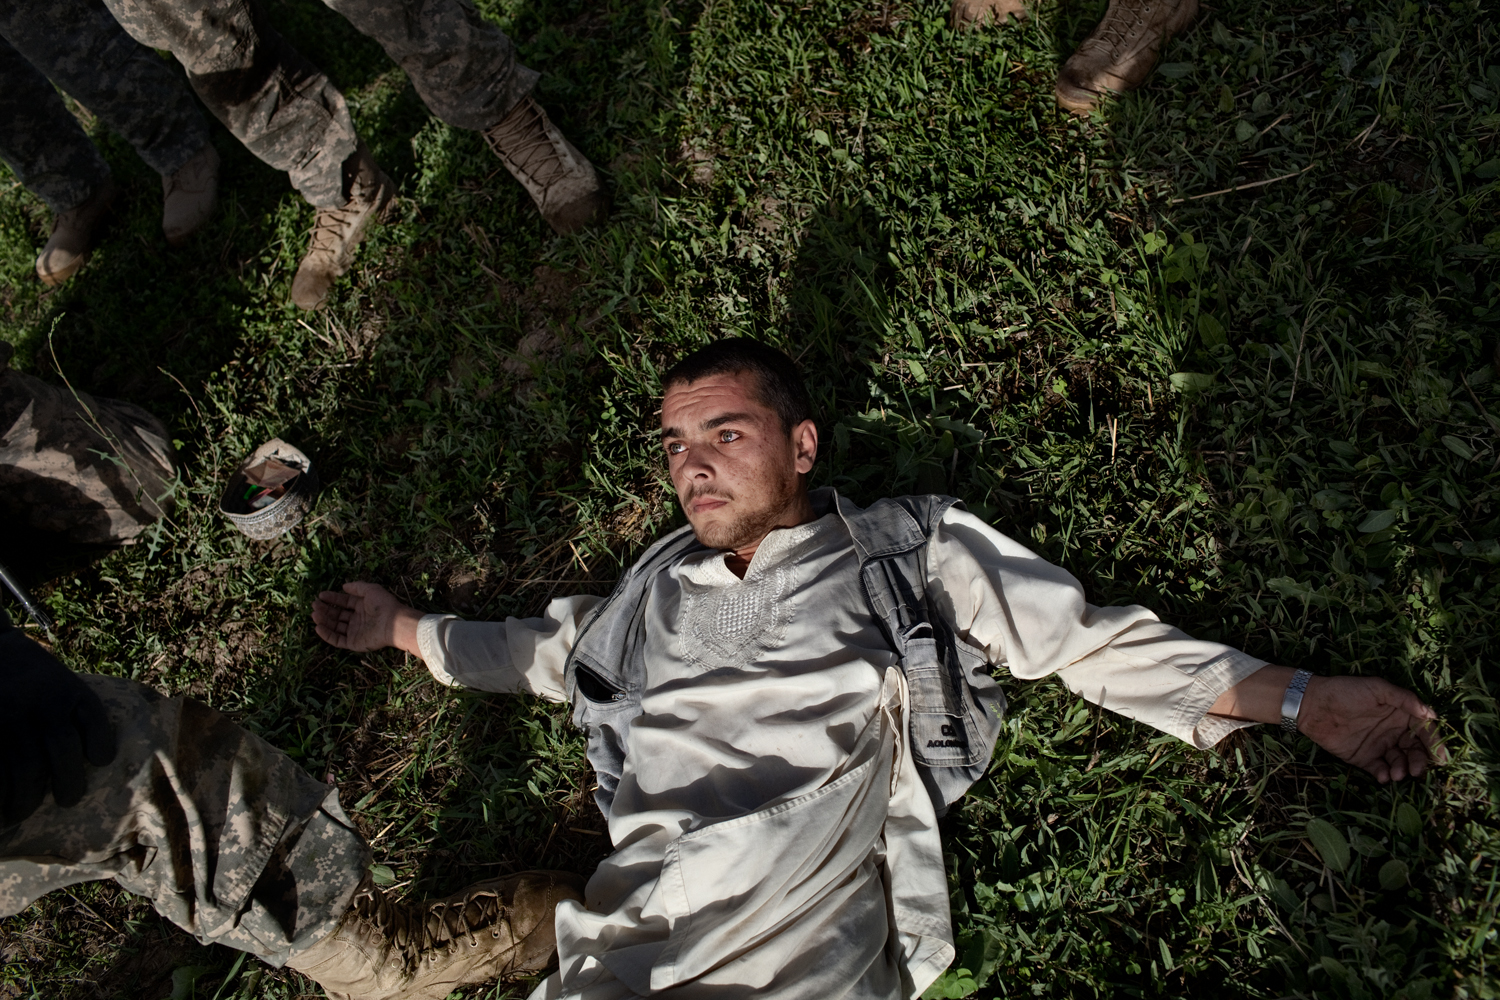 An Afghan man is searched by U.S. Army in the Tangi Valley, Wardak Province, Afghanistan.